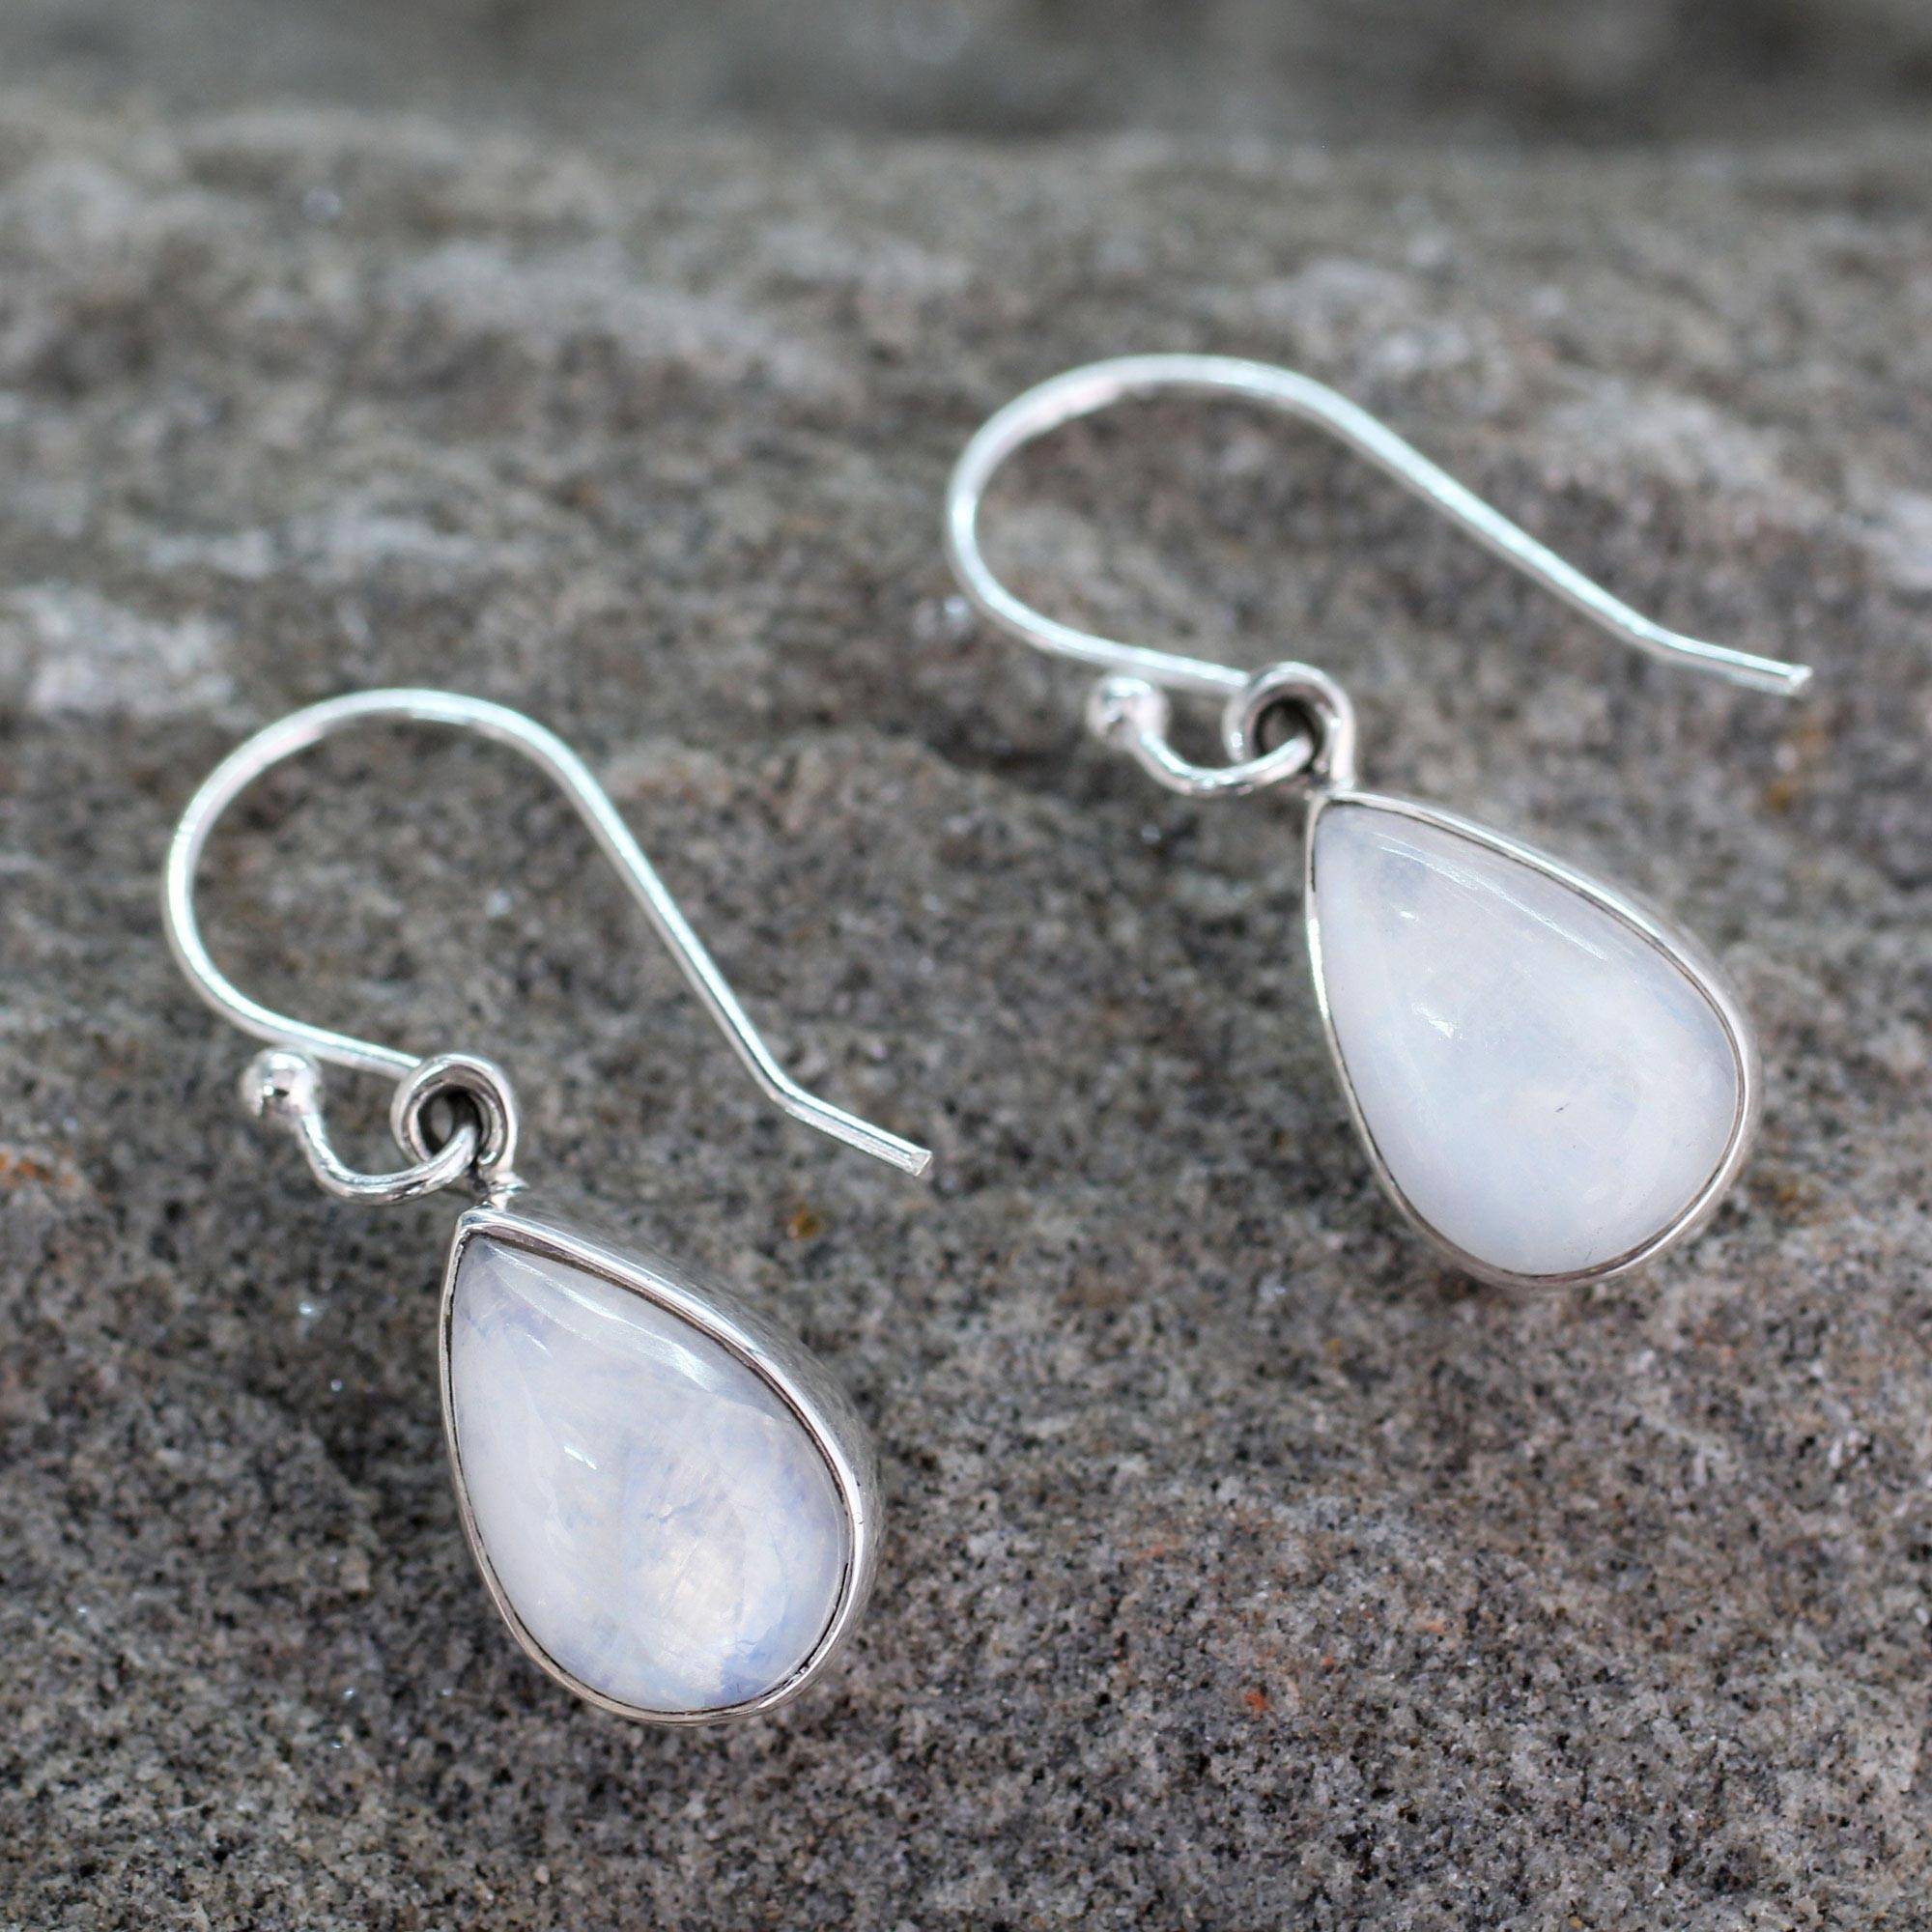 Rainbow moonstone dangle earrings, 'Luminous Light' Sterling Silver drop earrings Jewelry Trends